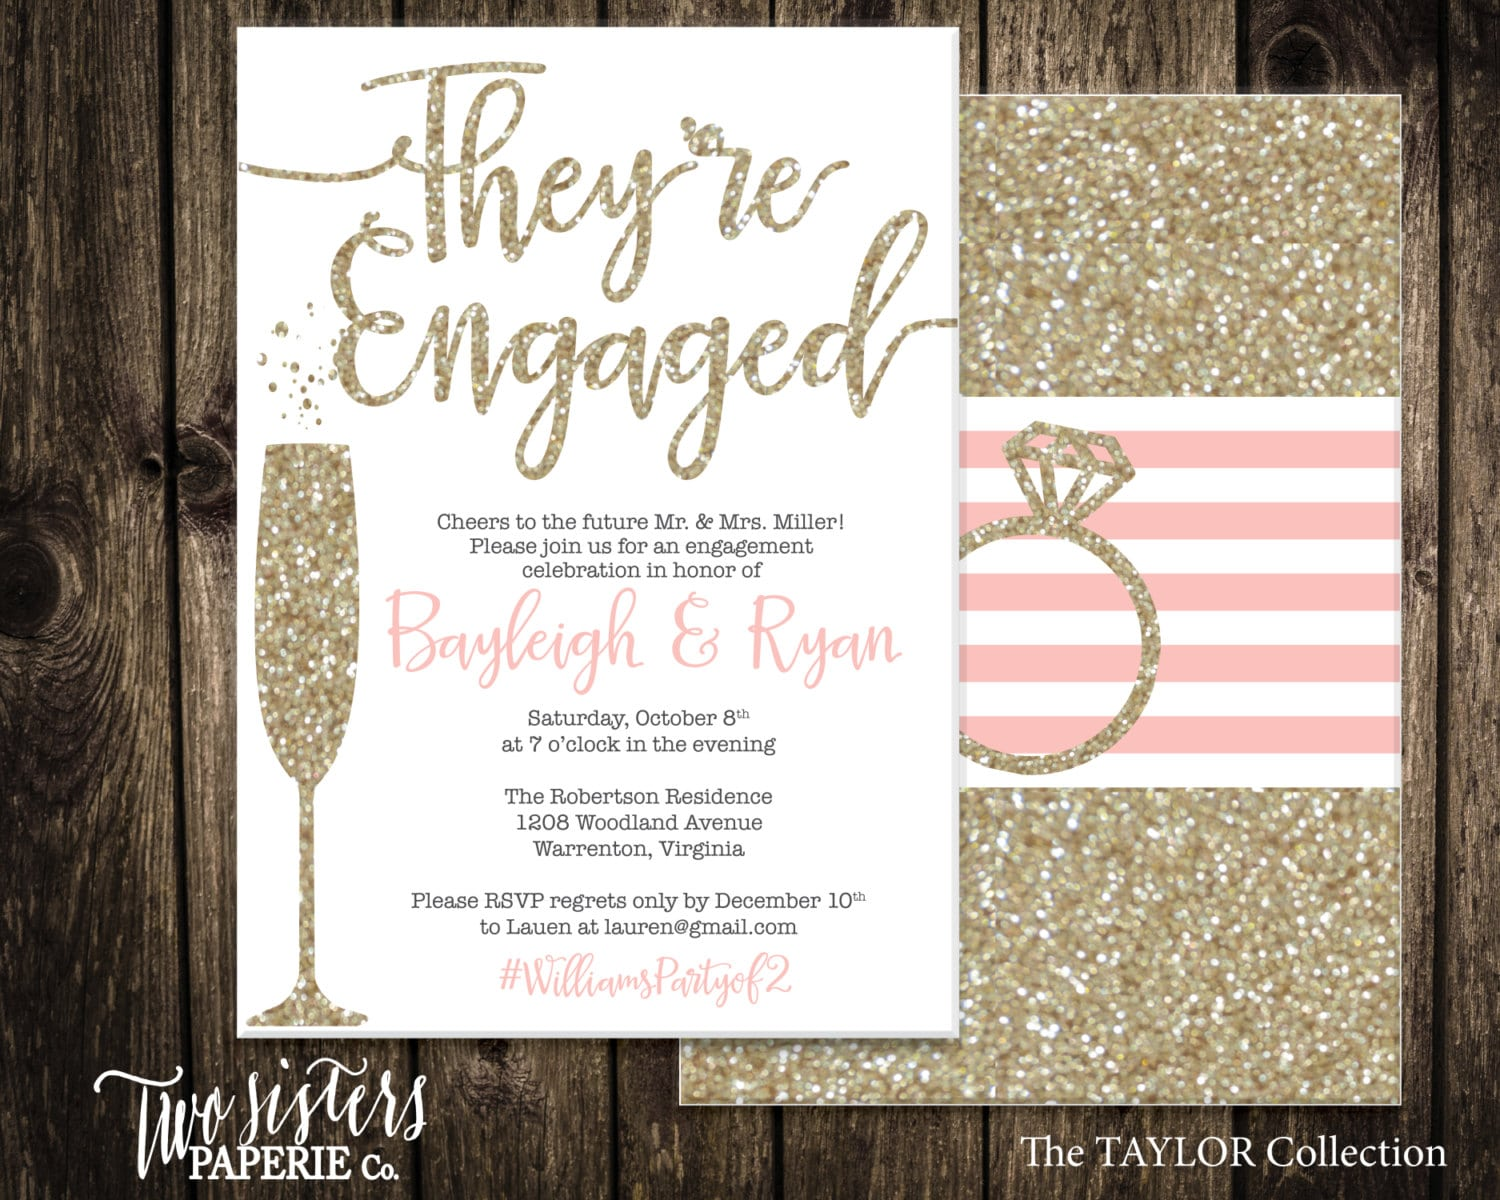 Engagement party invitations etsy mickey mouse for Etsy engagement party invites